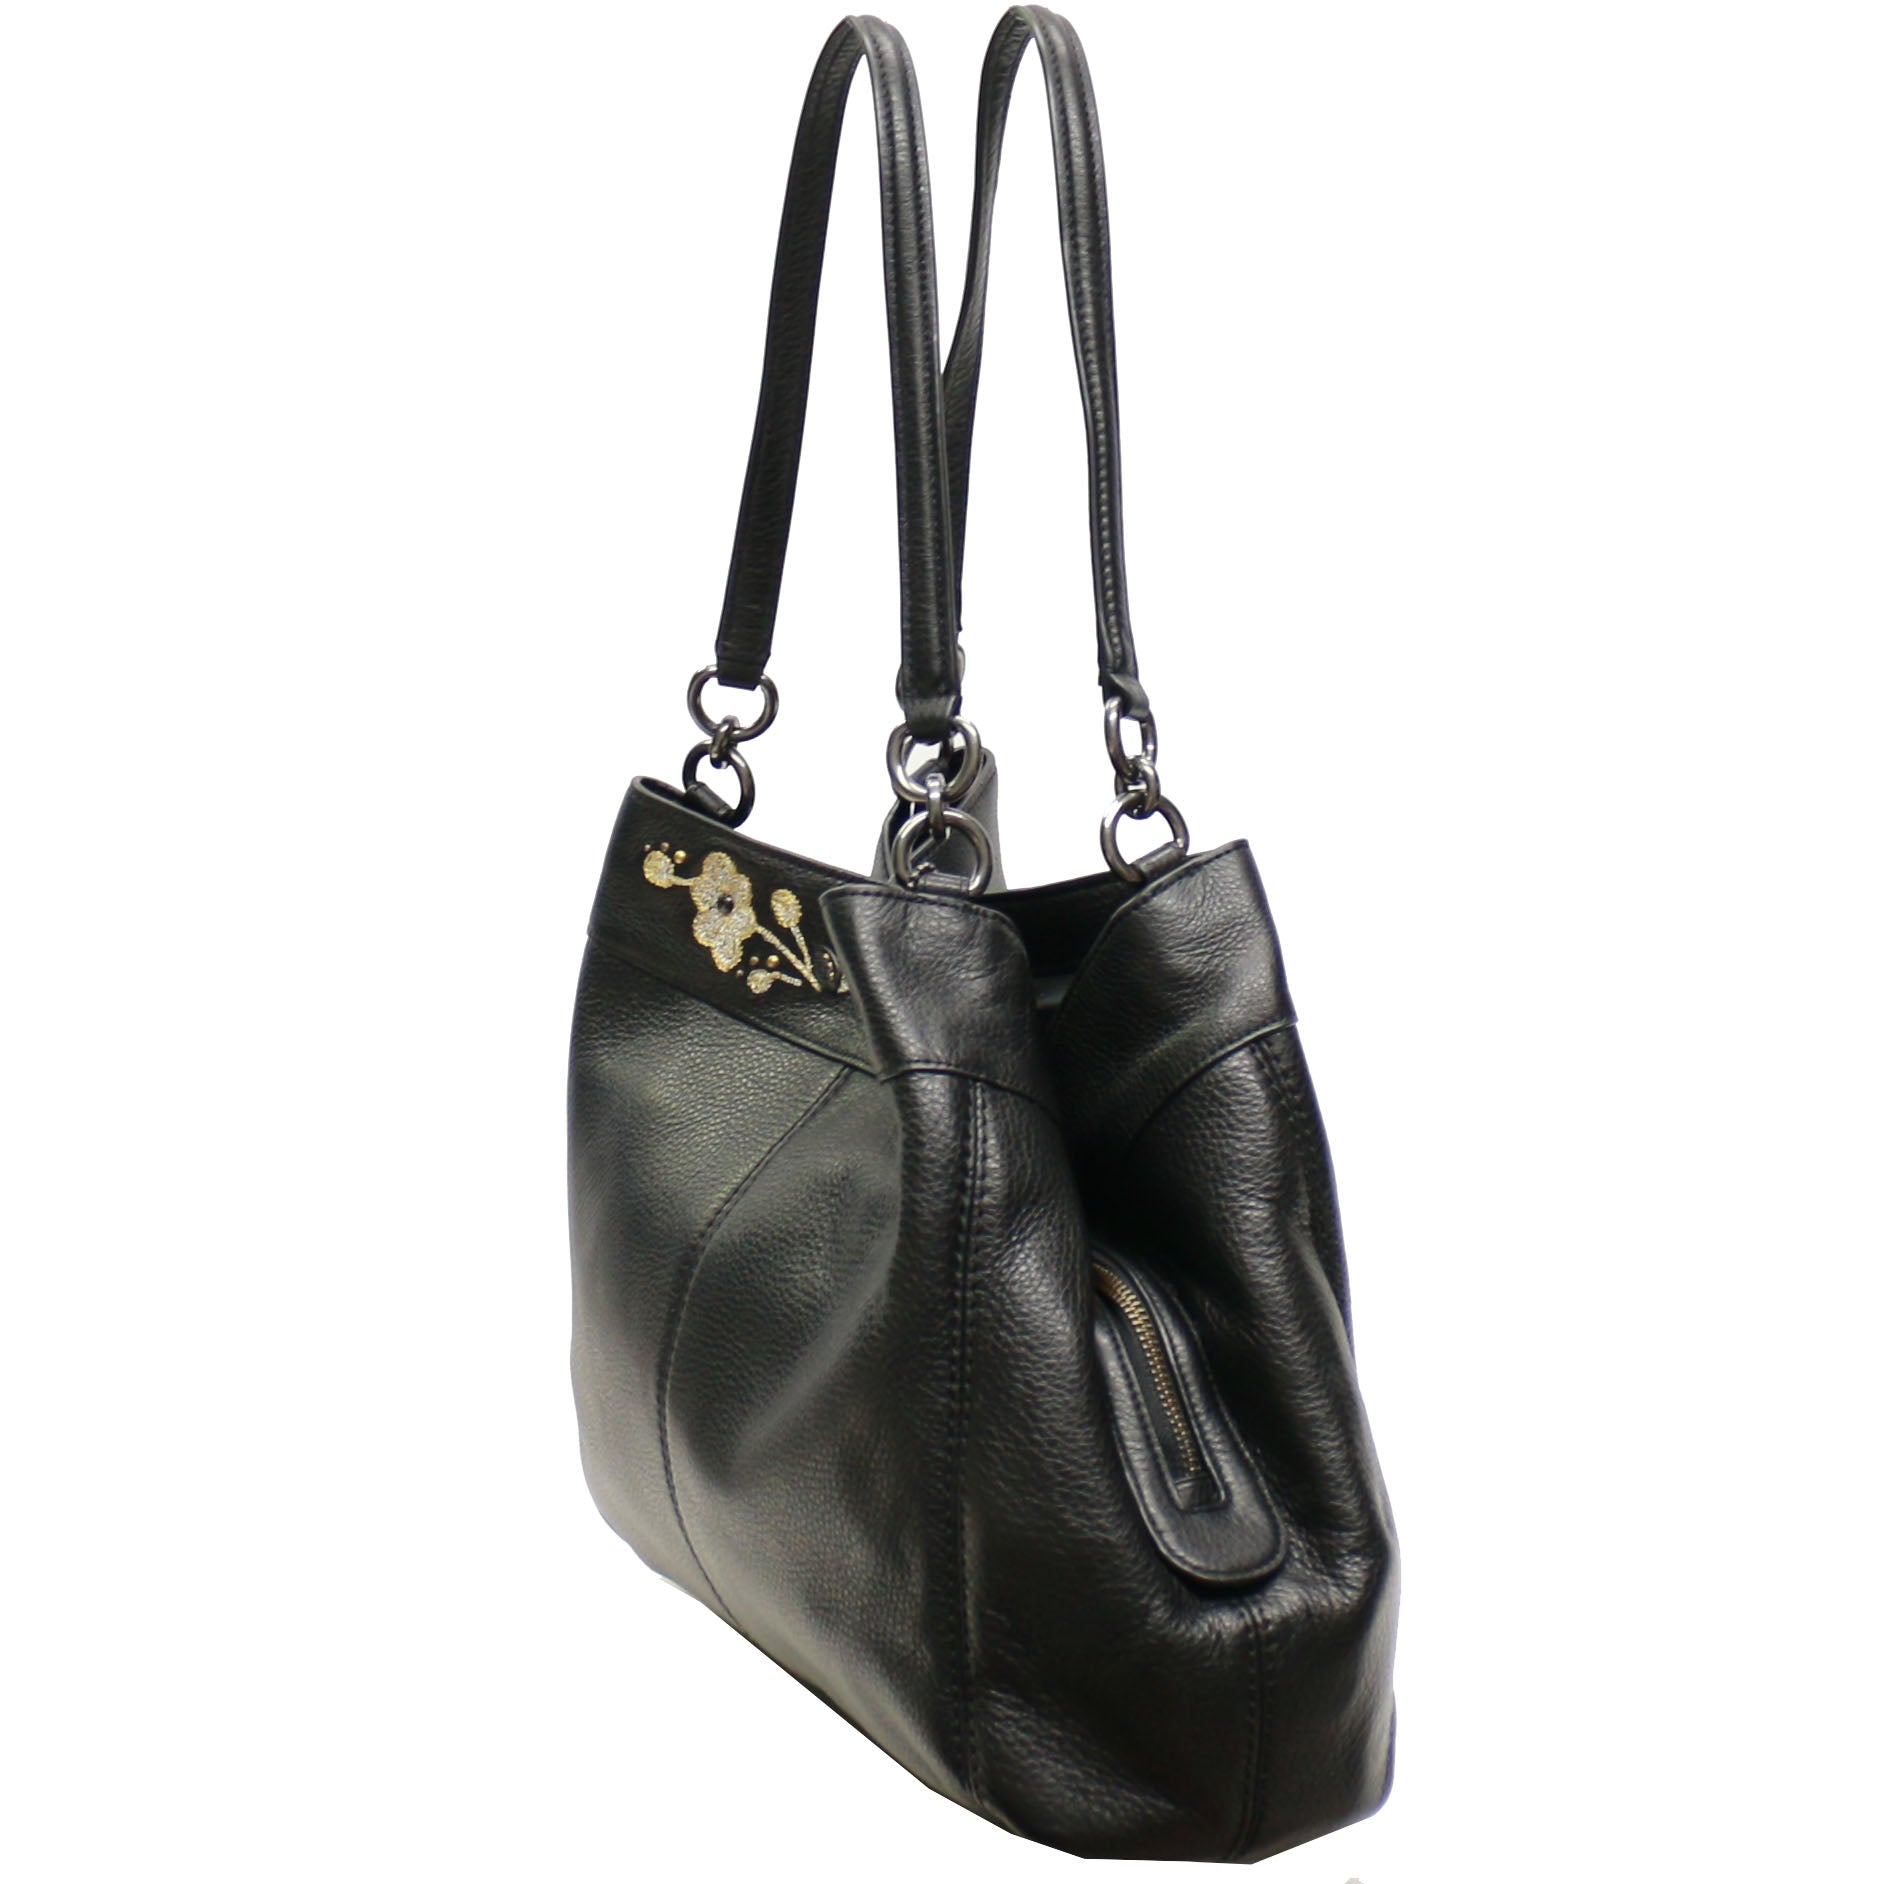 553ae50d95c ... Coach F57545 Pebble Leather Floral Embroidery Lexy Shoulder Bag- Black  ...